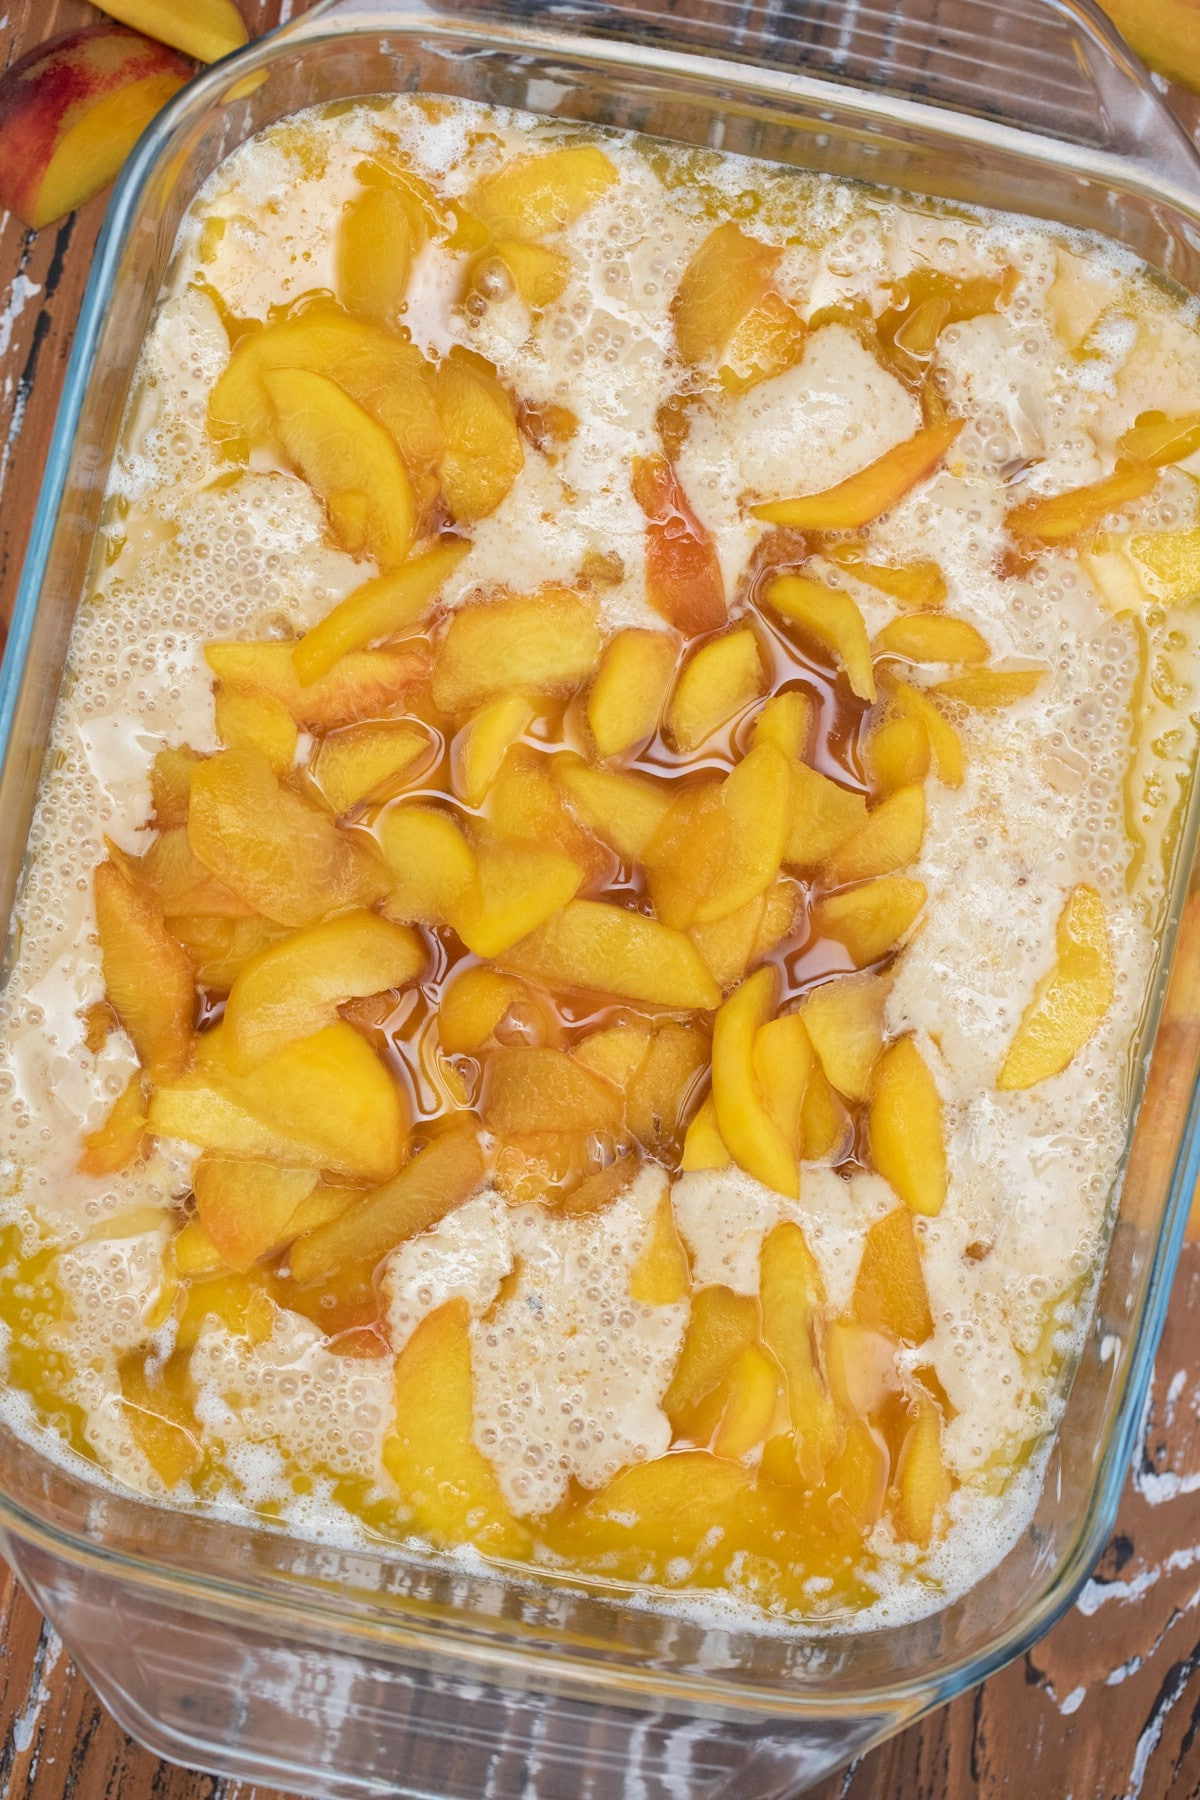 Peach cobbler before baking in large glass casserole dish